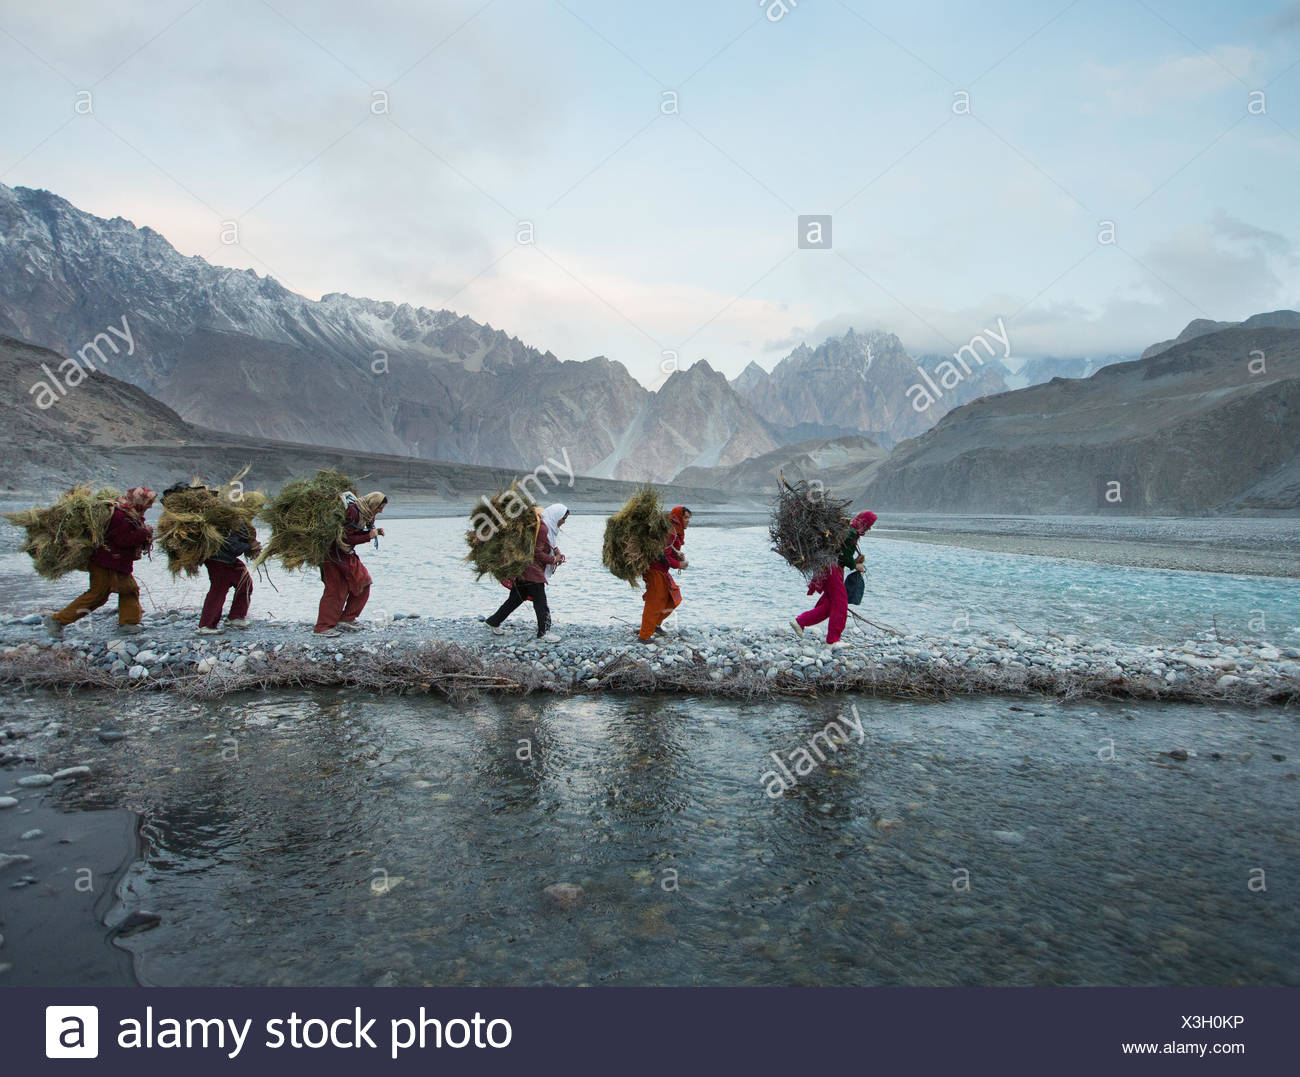 Women returning from getting wood for cooking and heating and hay to feed their livestock, a two hour walk. - Stock Image